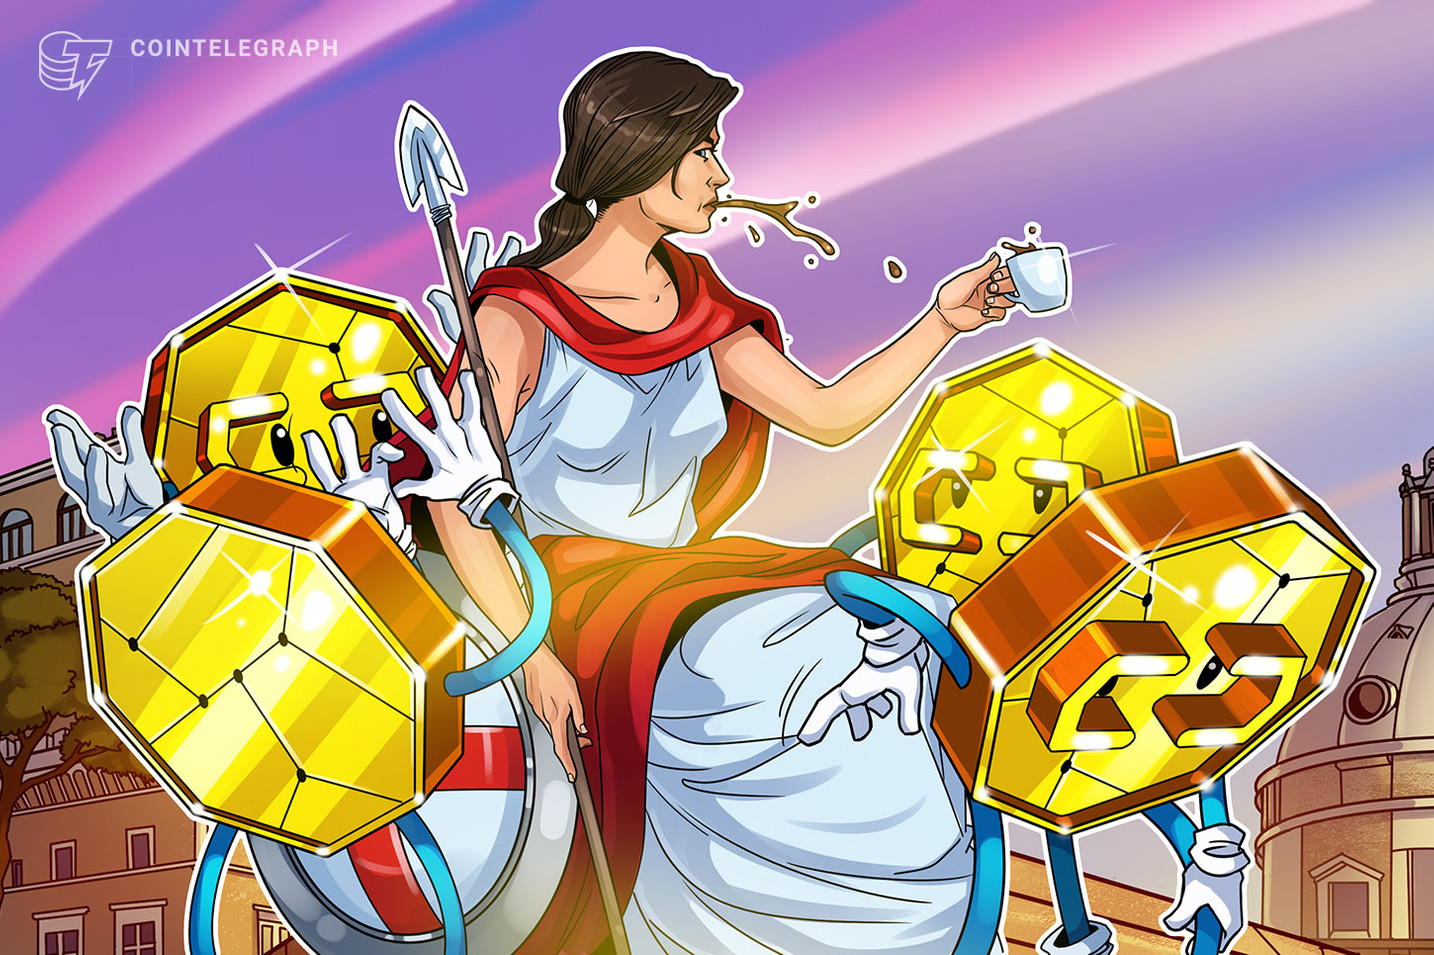 The Bitcoin revolution: The new 'Bank of England' is 'no bank at all'